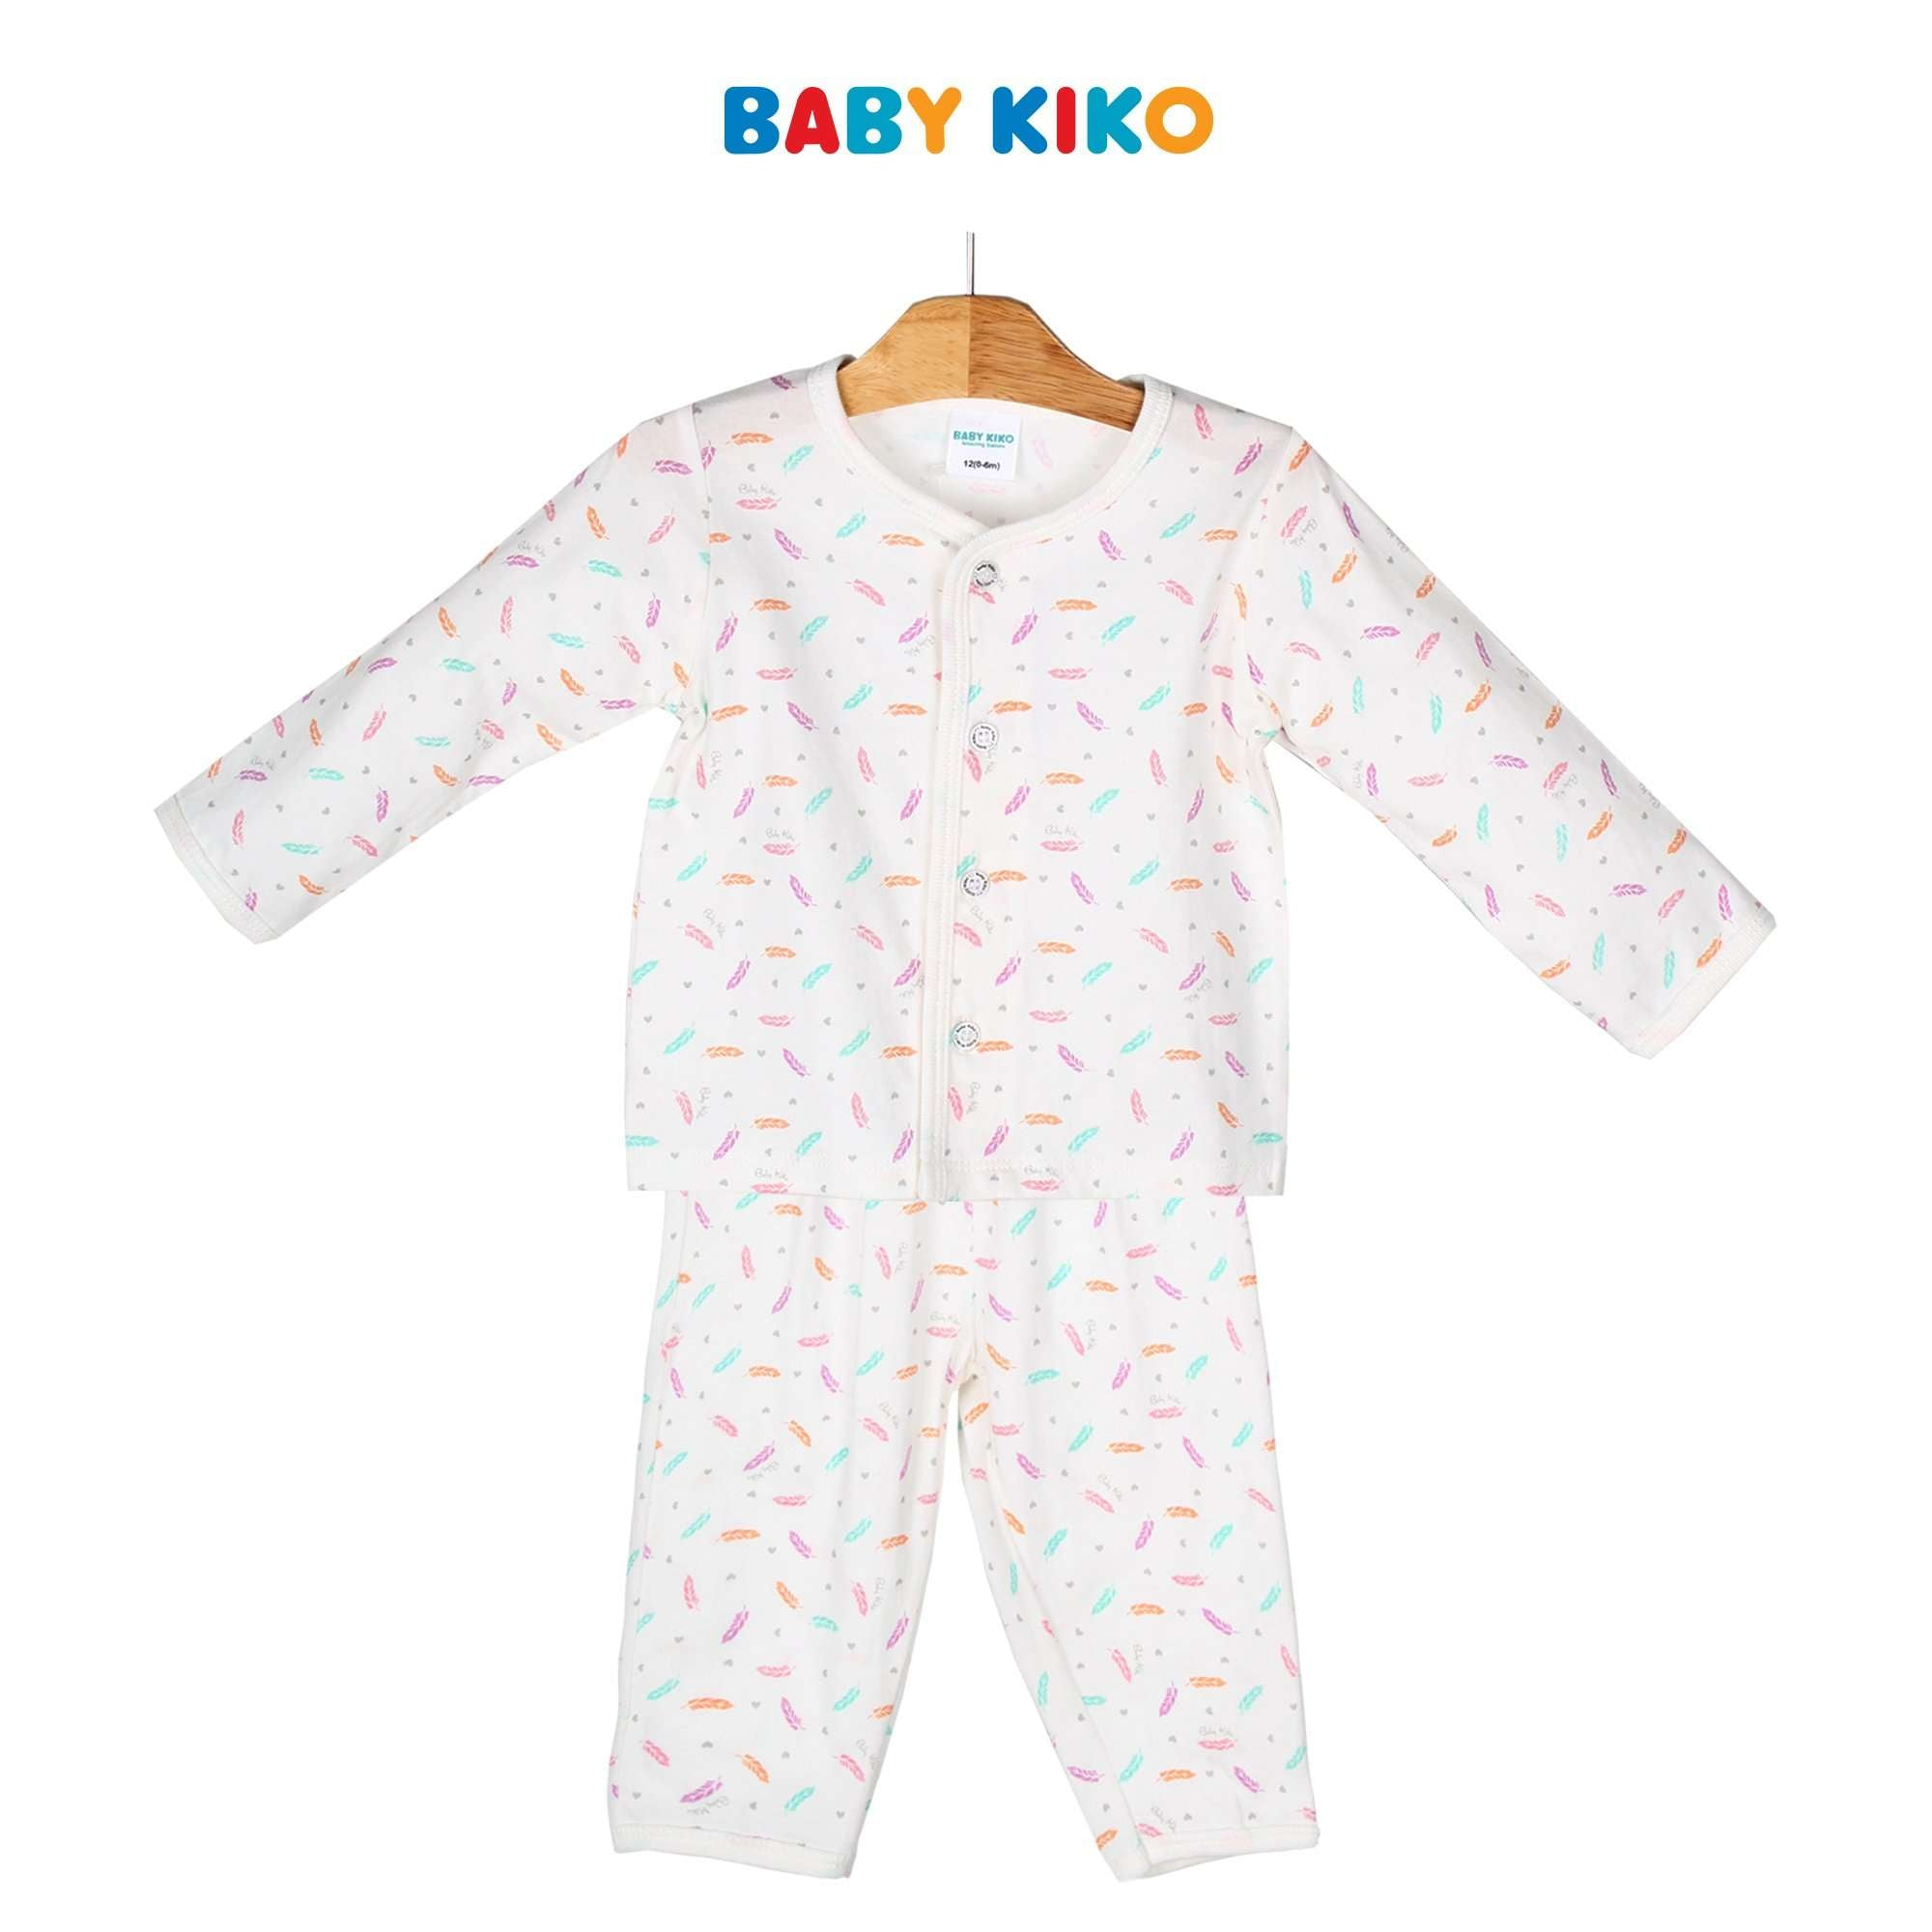 Baby KIKO Baby Girl Long Sleeve Long Pants Suit 320154-431 : Buy Baby KIKO online at CMG.MY